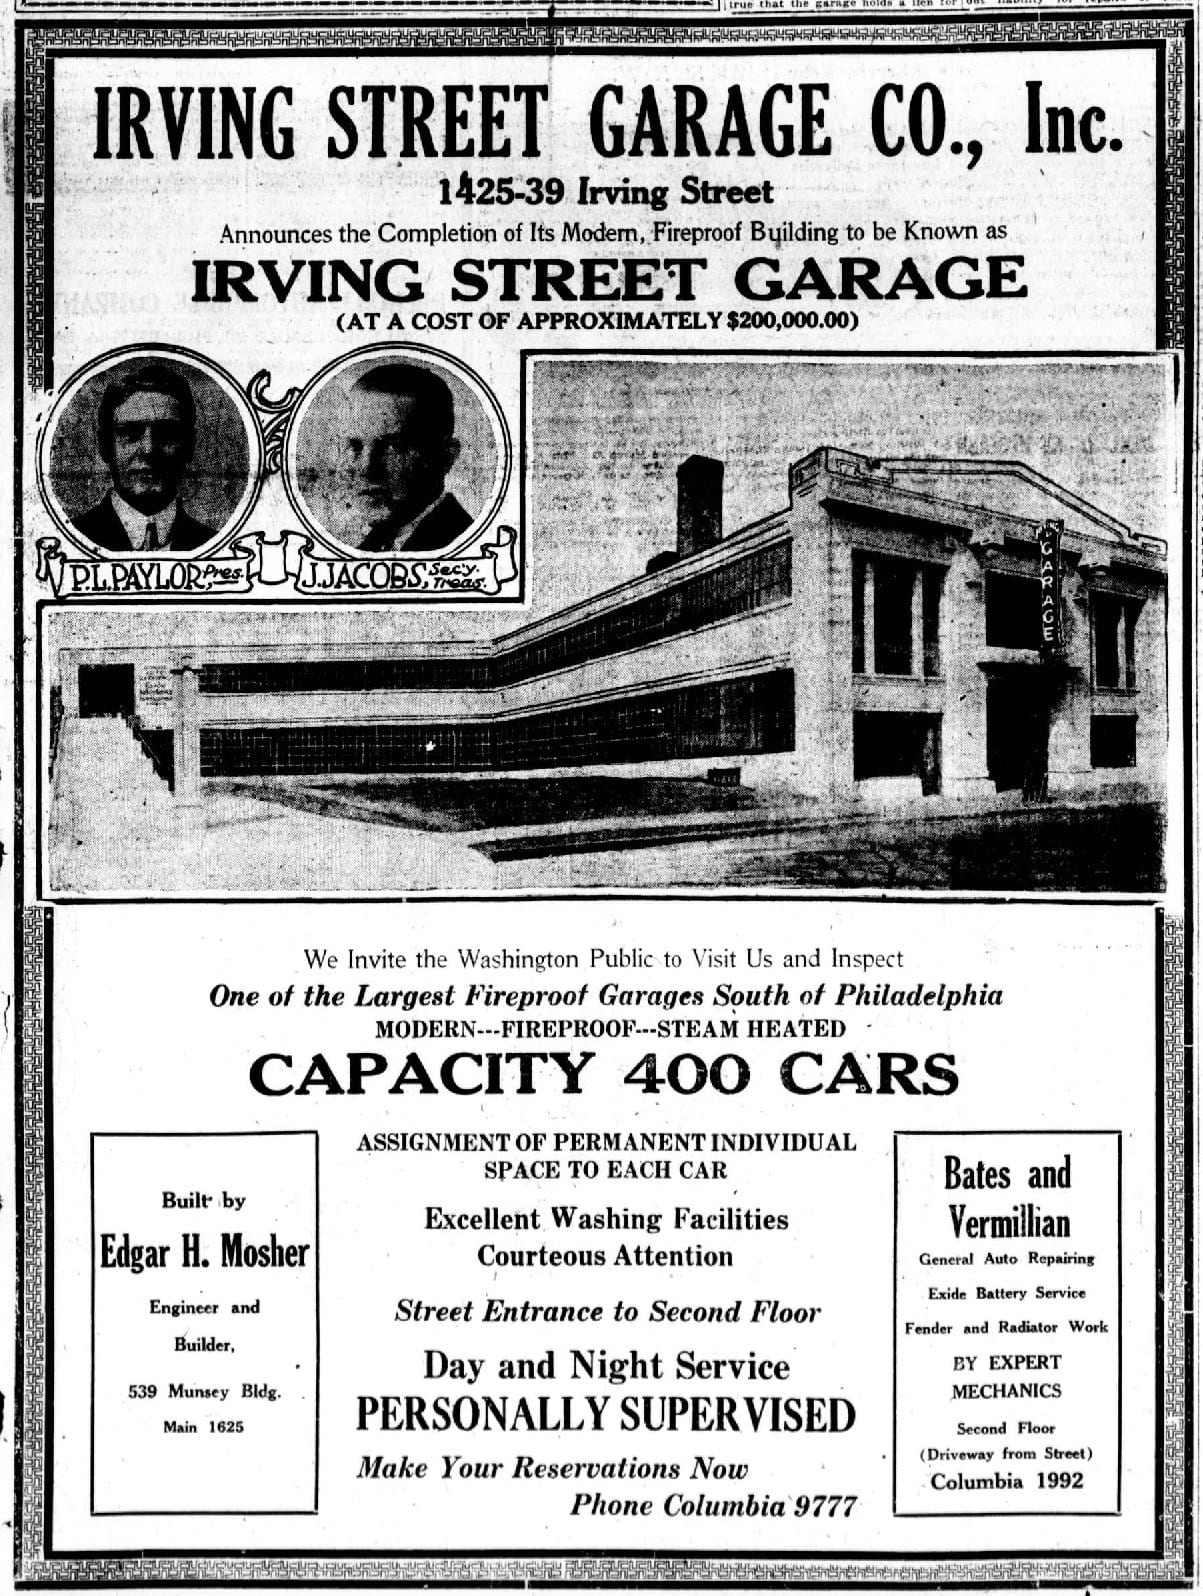 Columbia Heights Had the Largest Fireproof Garage South of Philadelphia